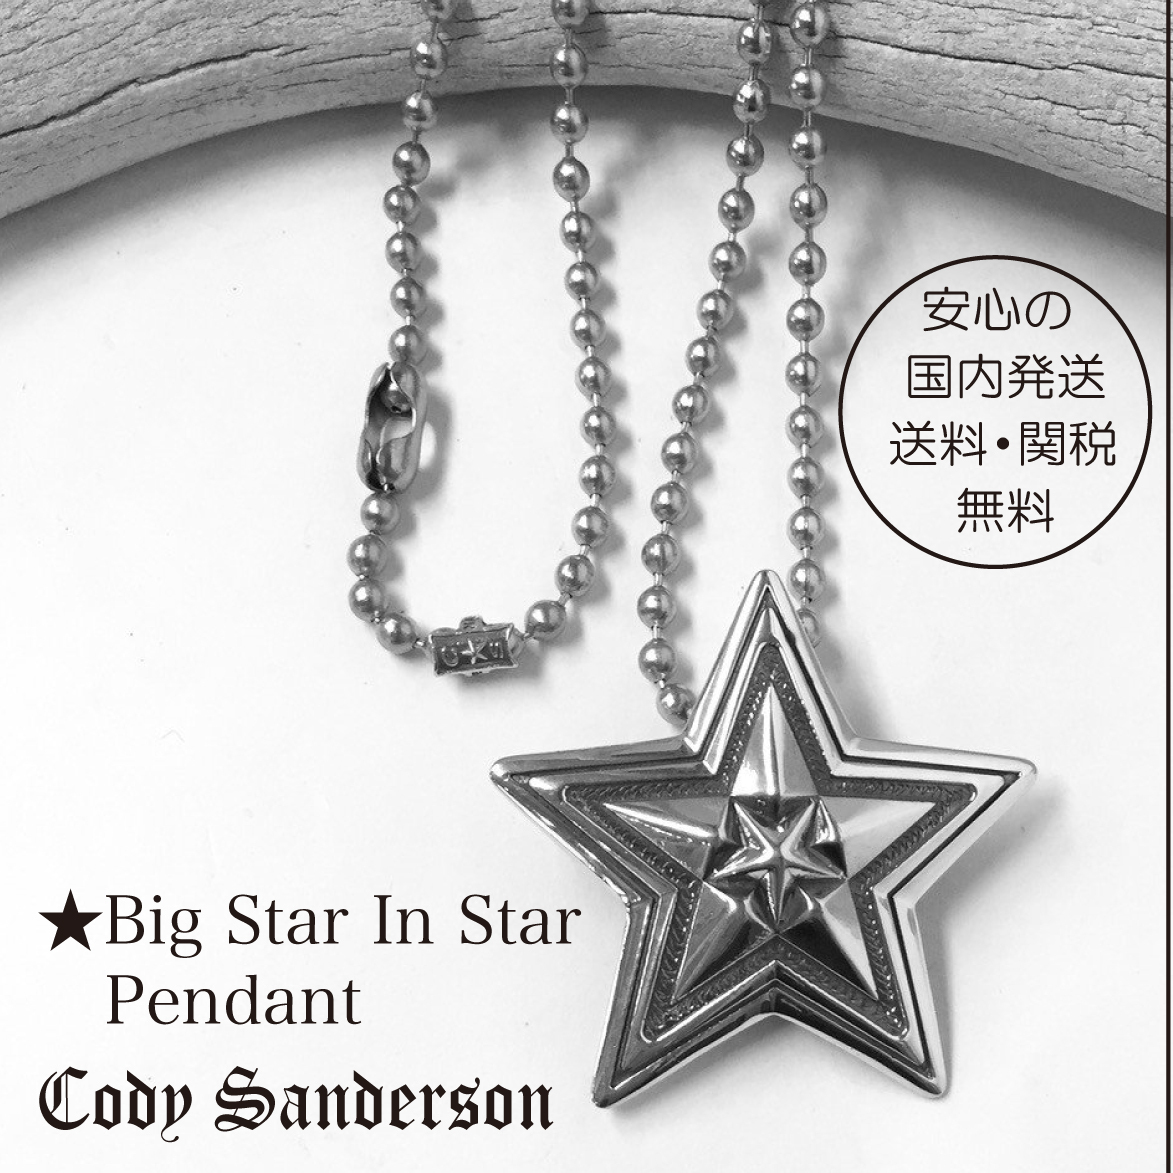 Cody Sanderson★Big Star In Star ペンダント★クーポン付